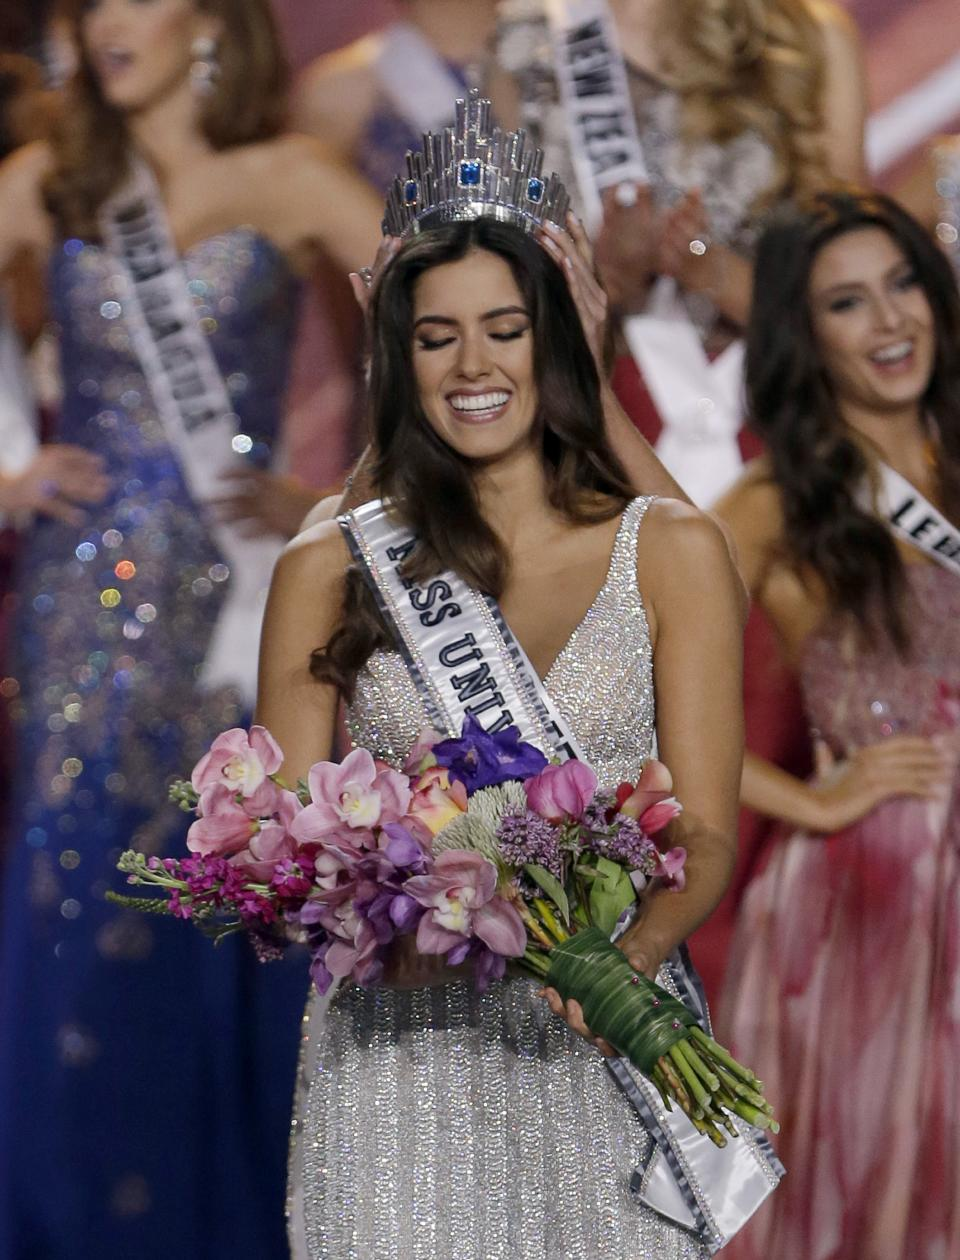 ♔ MISS UNIVERSE® 2014 - Official Thread- Paulina Vega - Colombia ♔ - Page 2 C026494530104c046c0f6a706700f88f